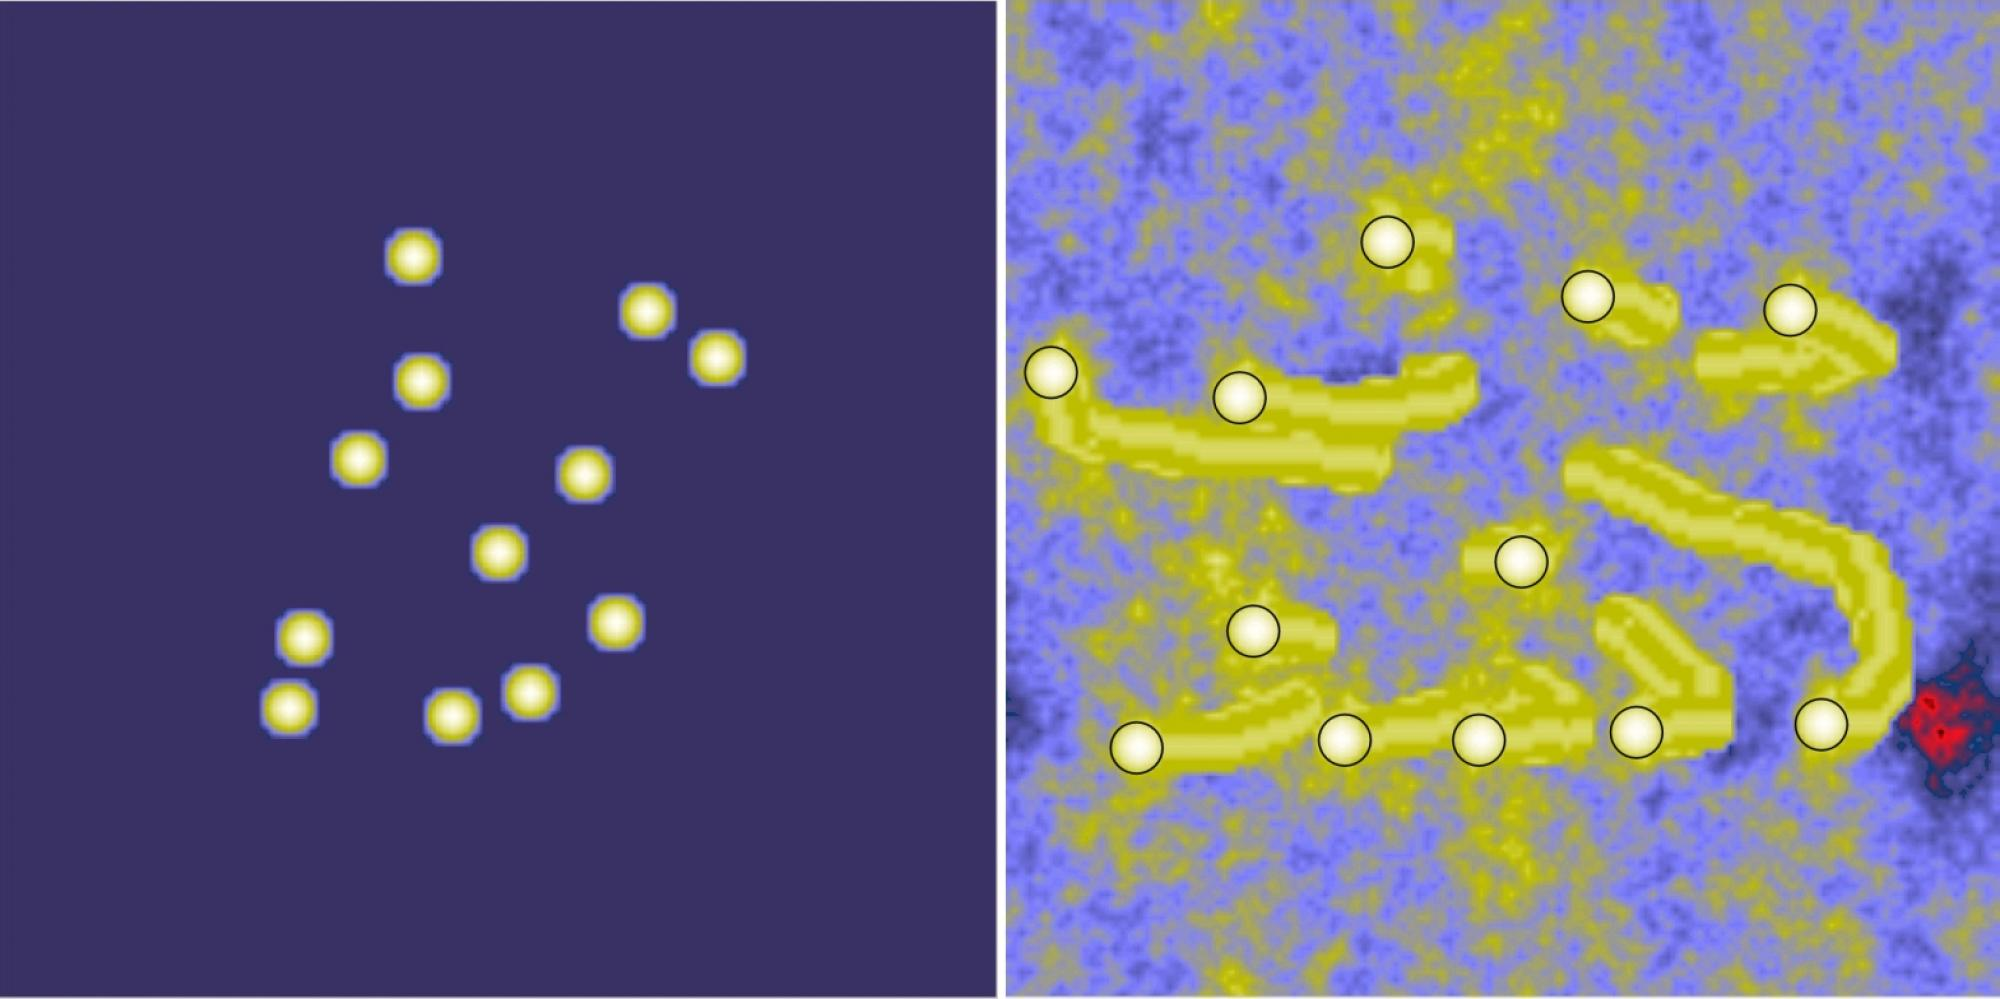 These images are from the computer simulations. The white dots on the left show the starting position of the rocks. The image on the right shows the final spacing of the rocks after the simulation has run. The yellow streaks behind the rocks represent the